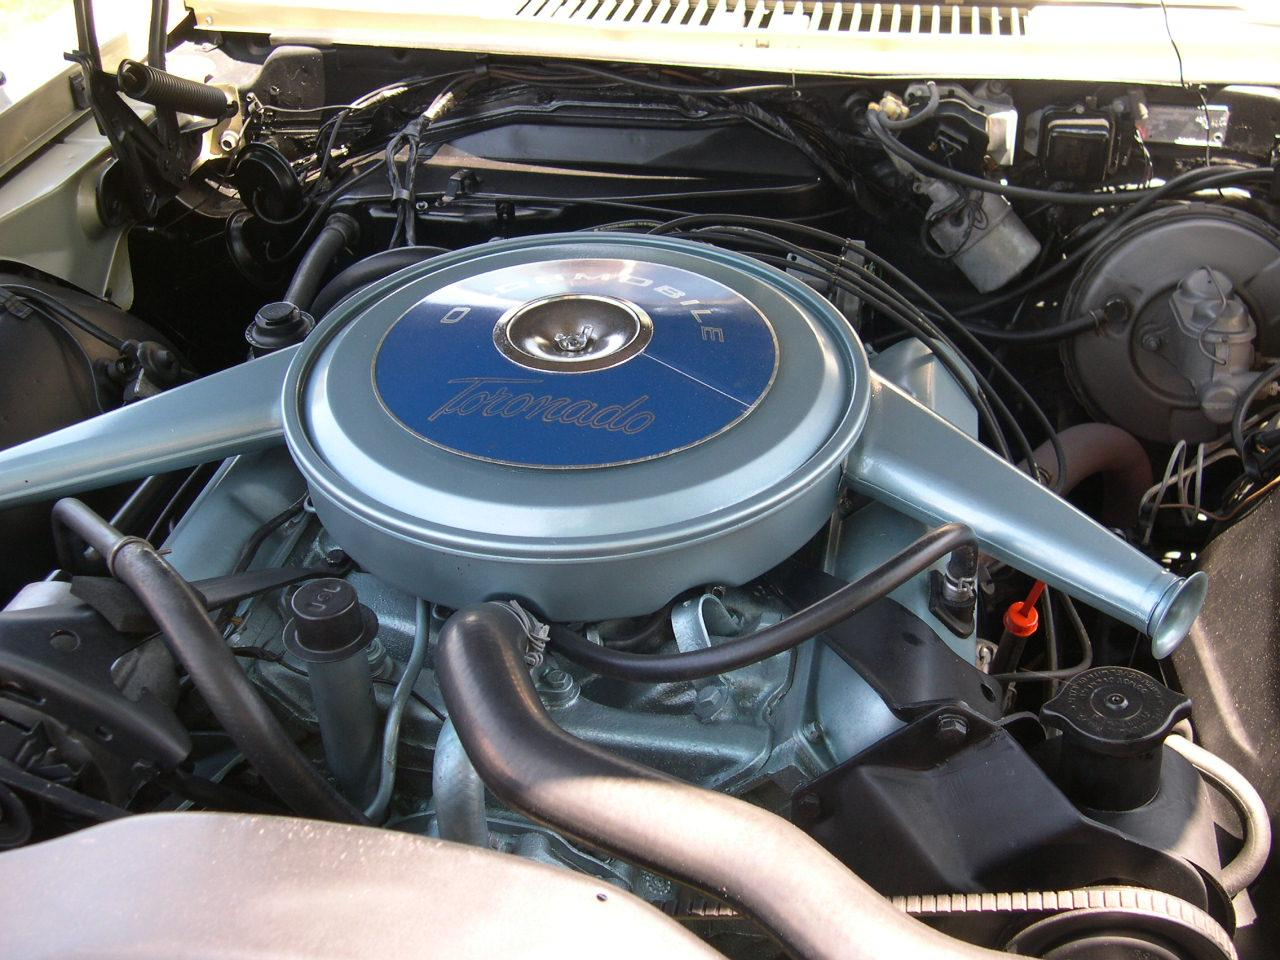 Oldsmobile Toronado engine #1